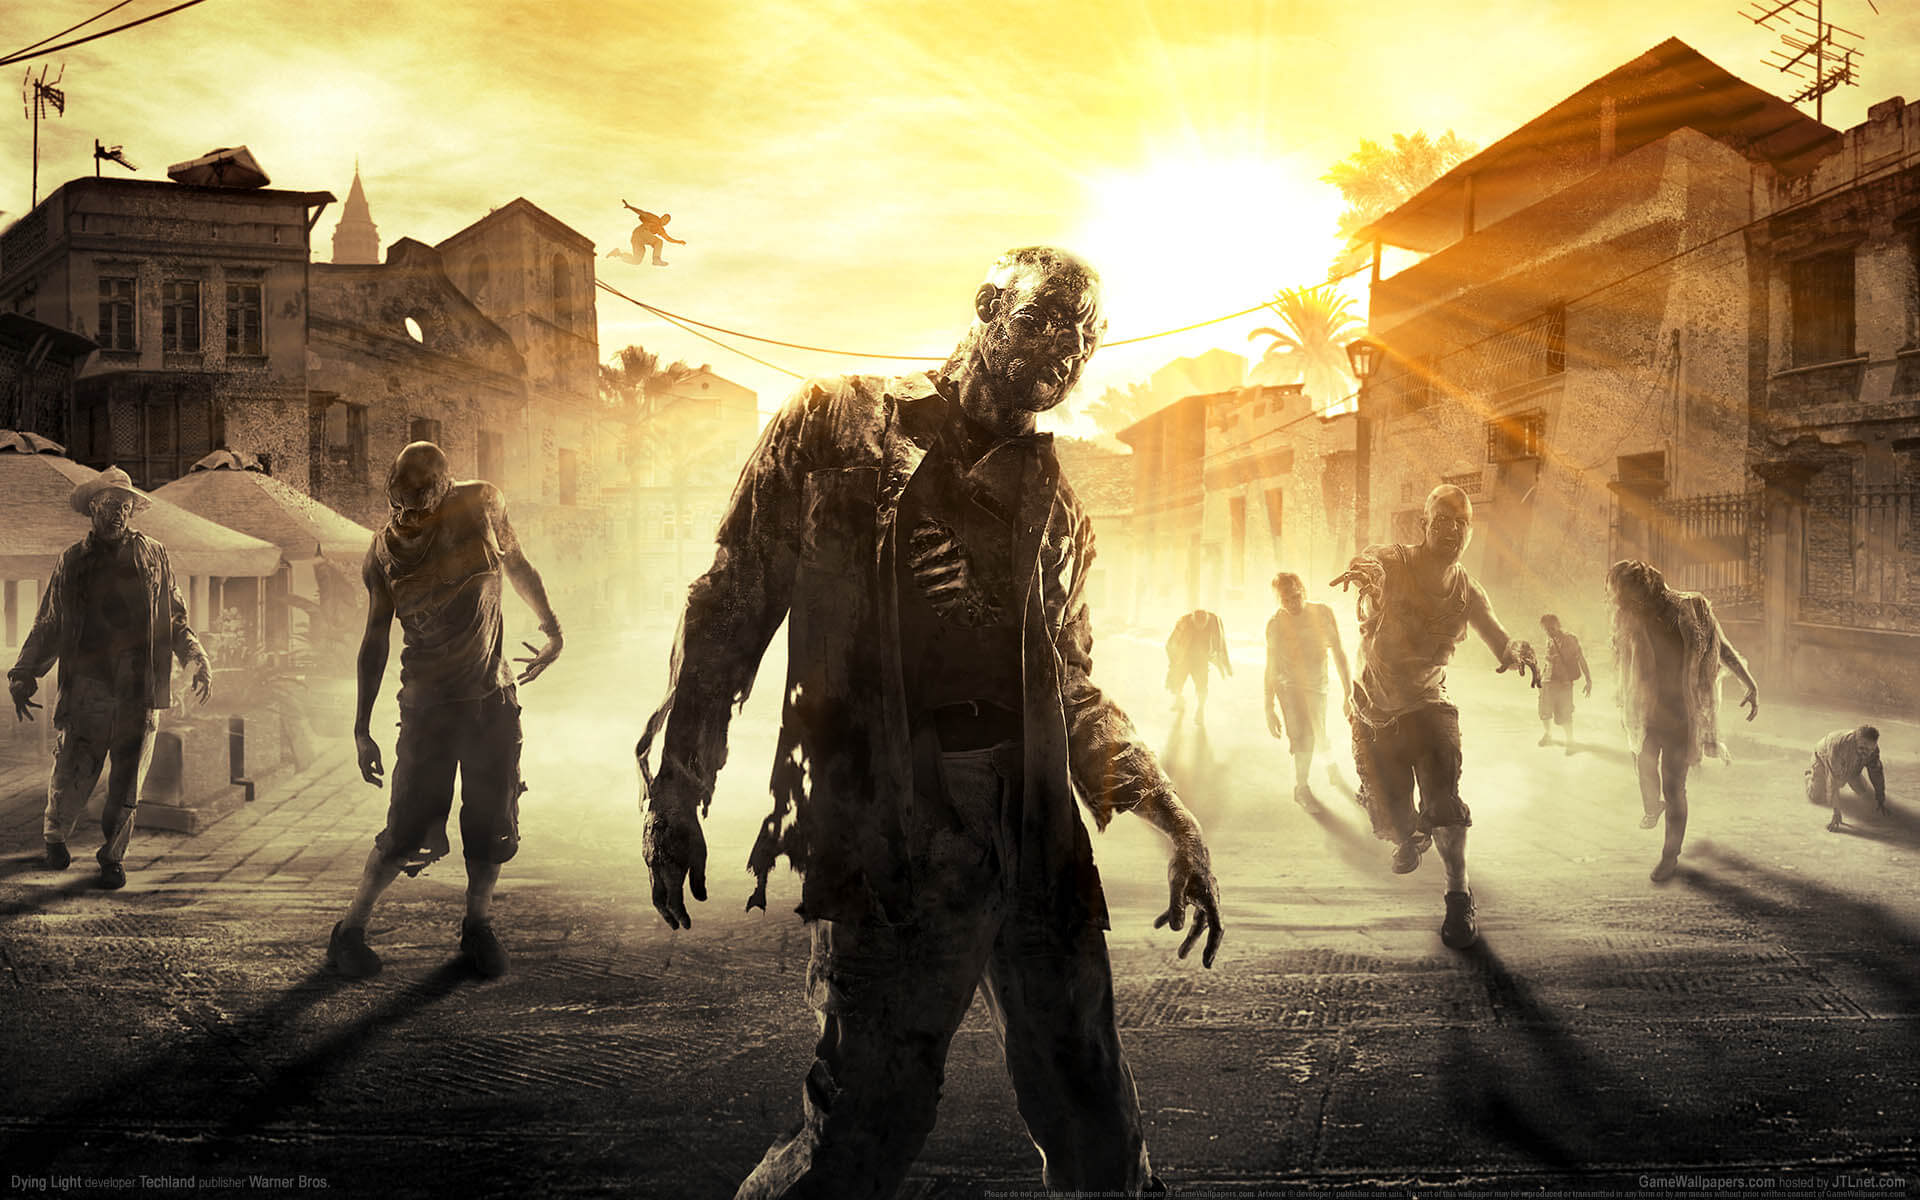 Dying Light Celebrates Halloween